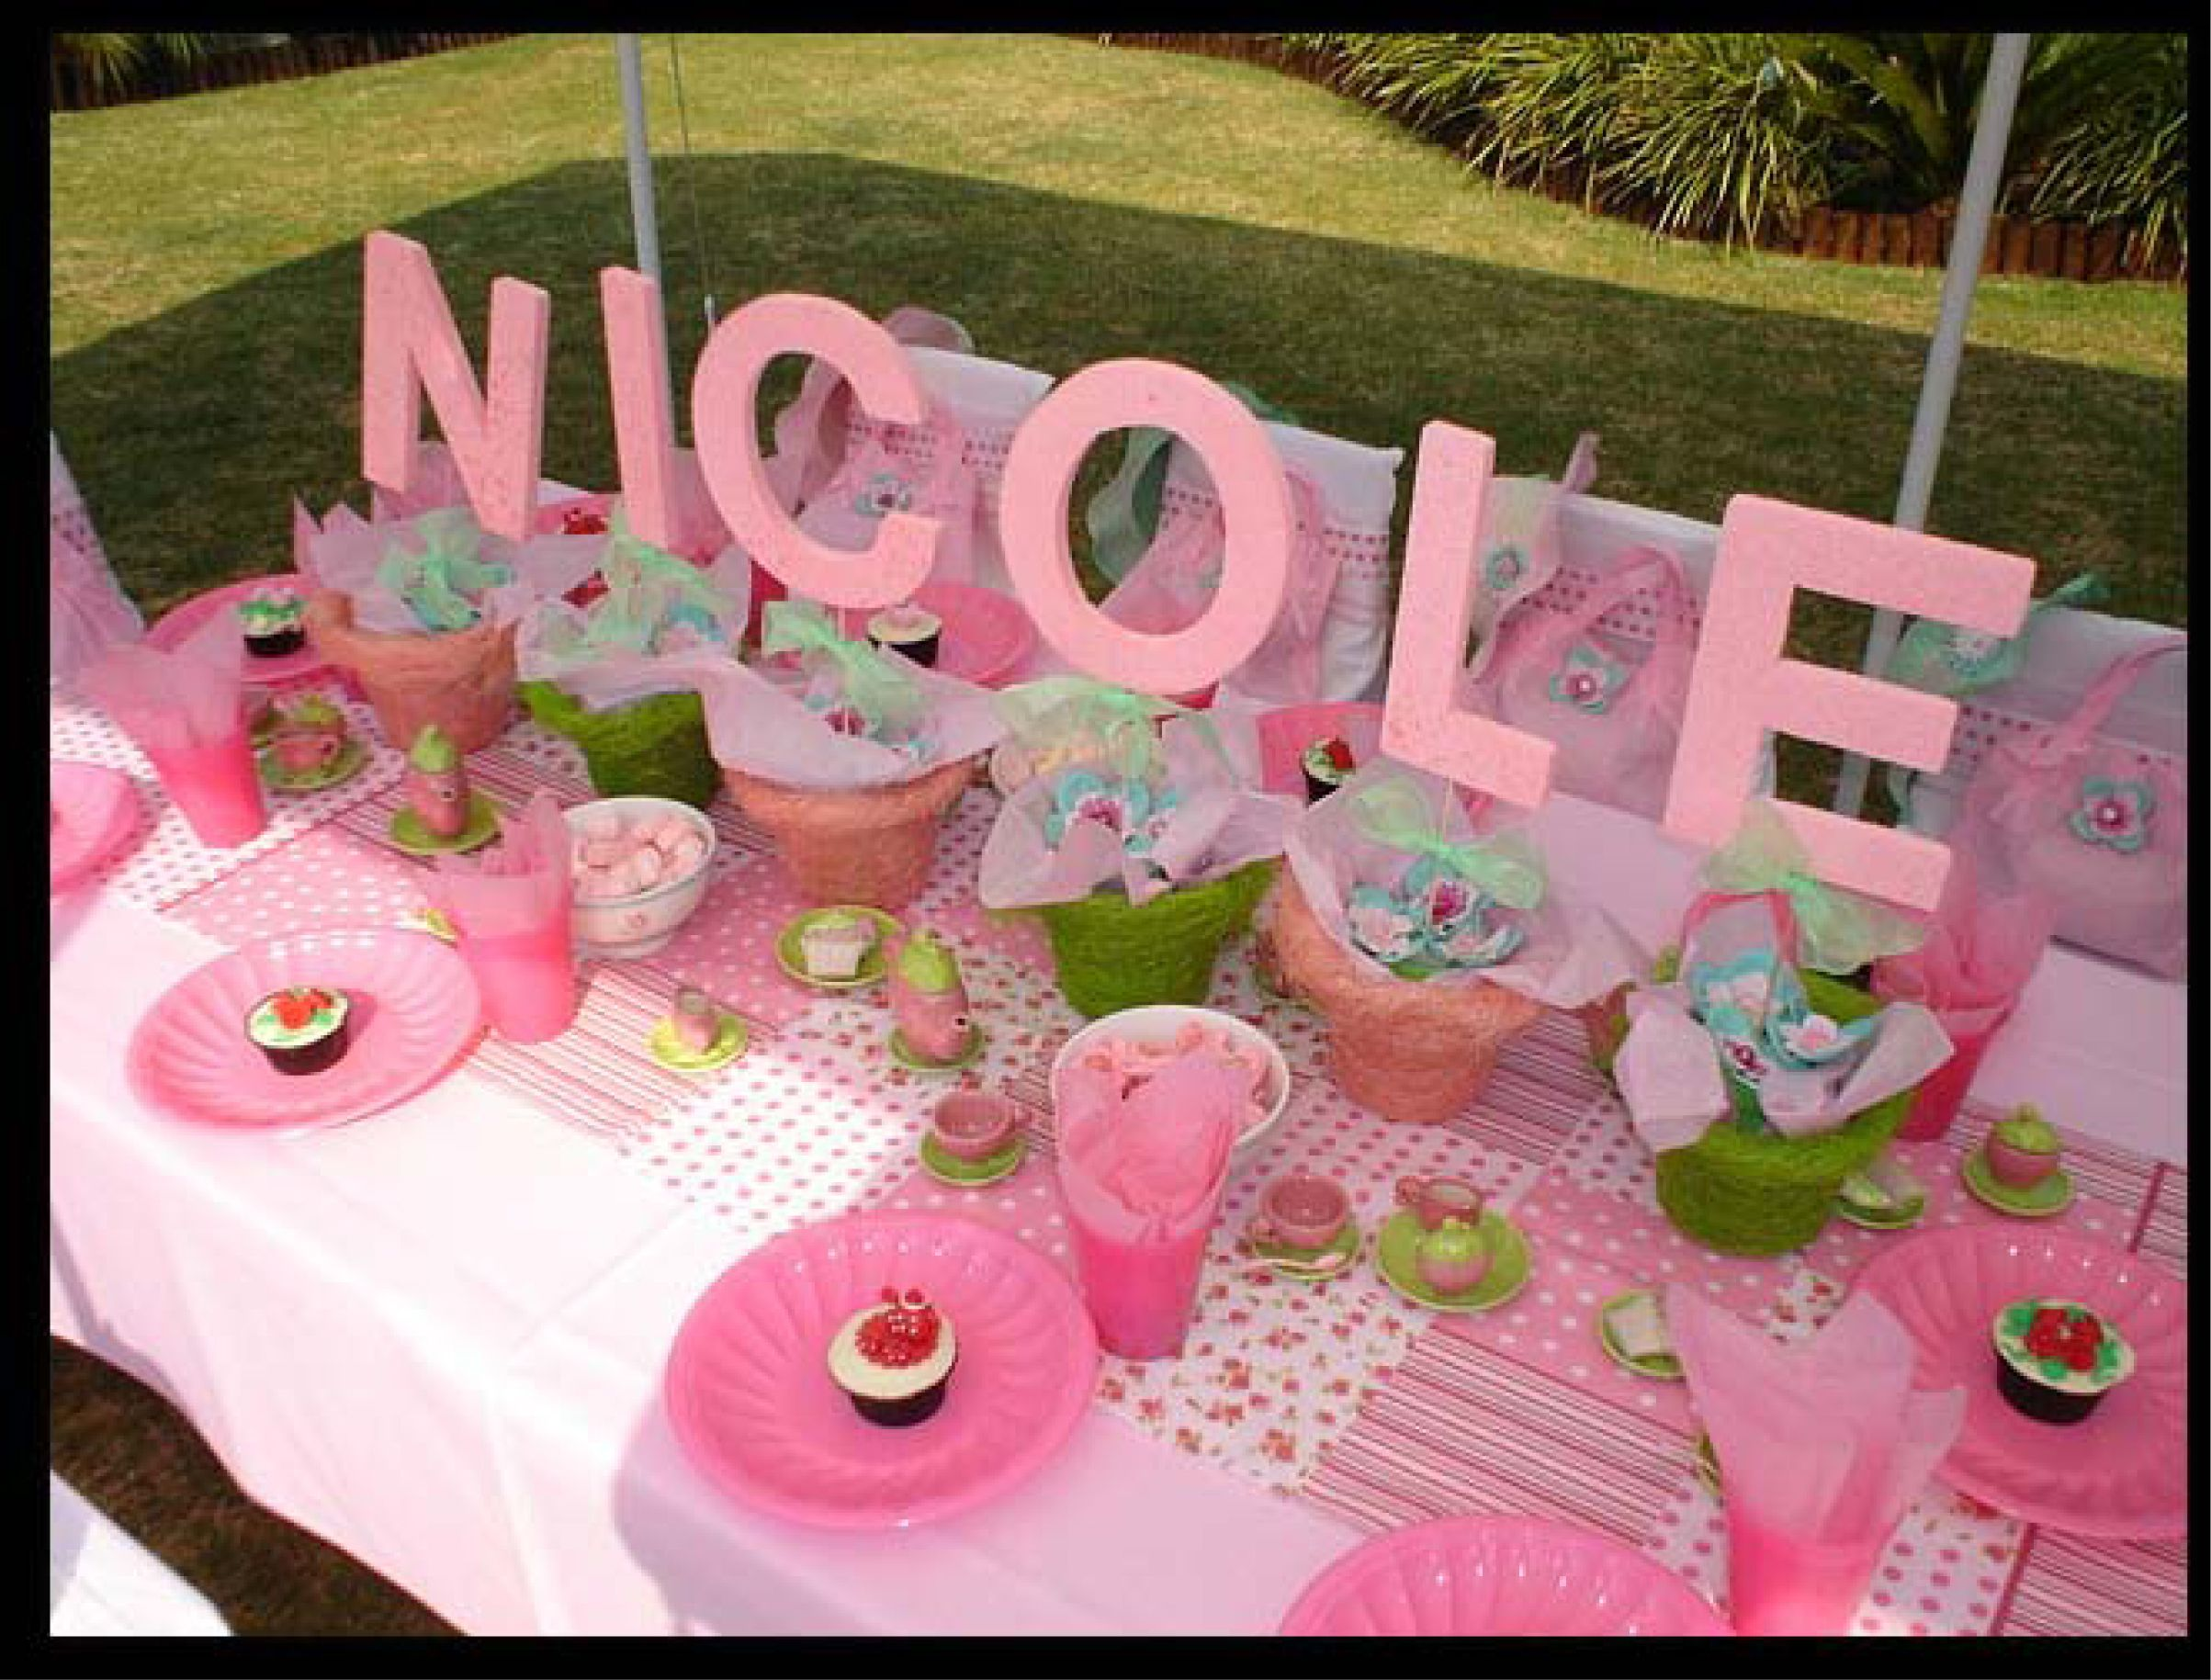 Kids tea party table - Name On Table In Arrangements American Girl Partiesafrican Kidsparty